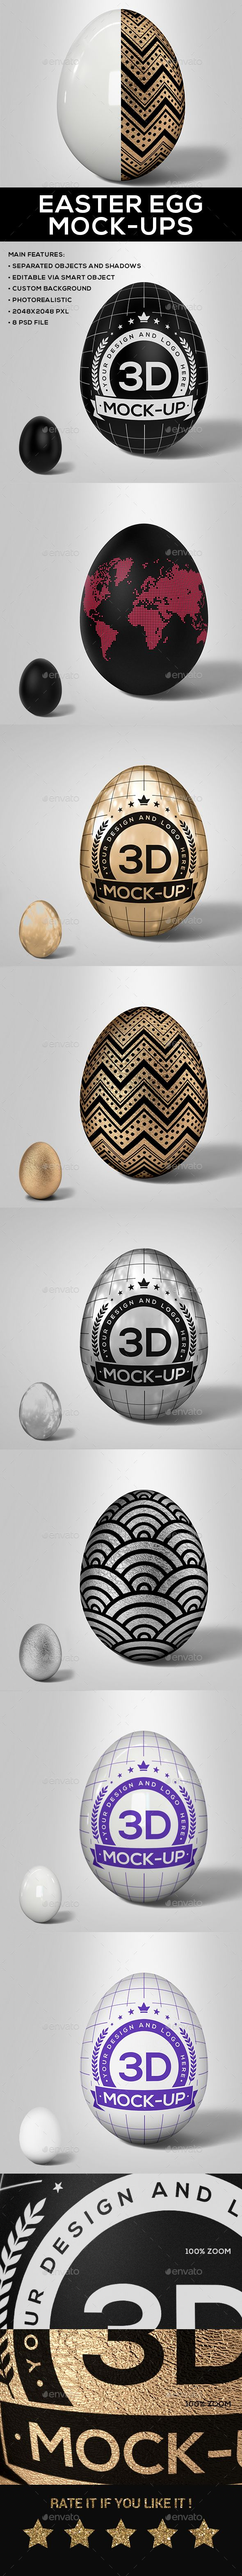 Print Mockup - Easter Egg Mock-Up V.2 - Print Mockup by 3background.  #UIUX #TuesdayMotivation #DesignTemplate #Vectors  #UserInterface #Logo #CyberMonday #HappyTuesday #TuesdayThoughts #WebElements #BlackFriday #TuesdayWisdom #PresentationTemplate#TuesdayFeeling #Graphic